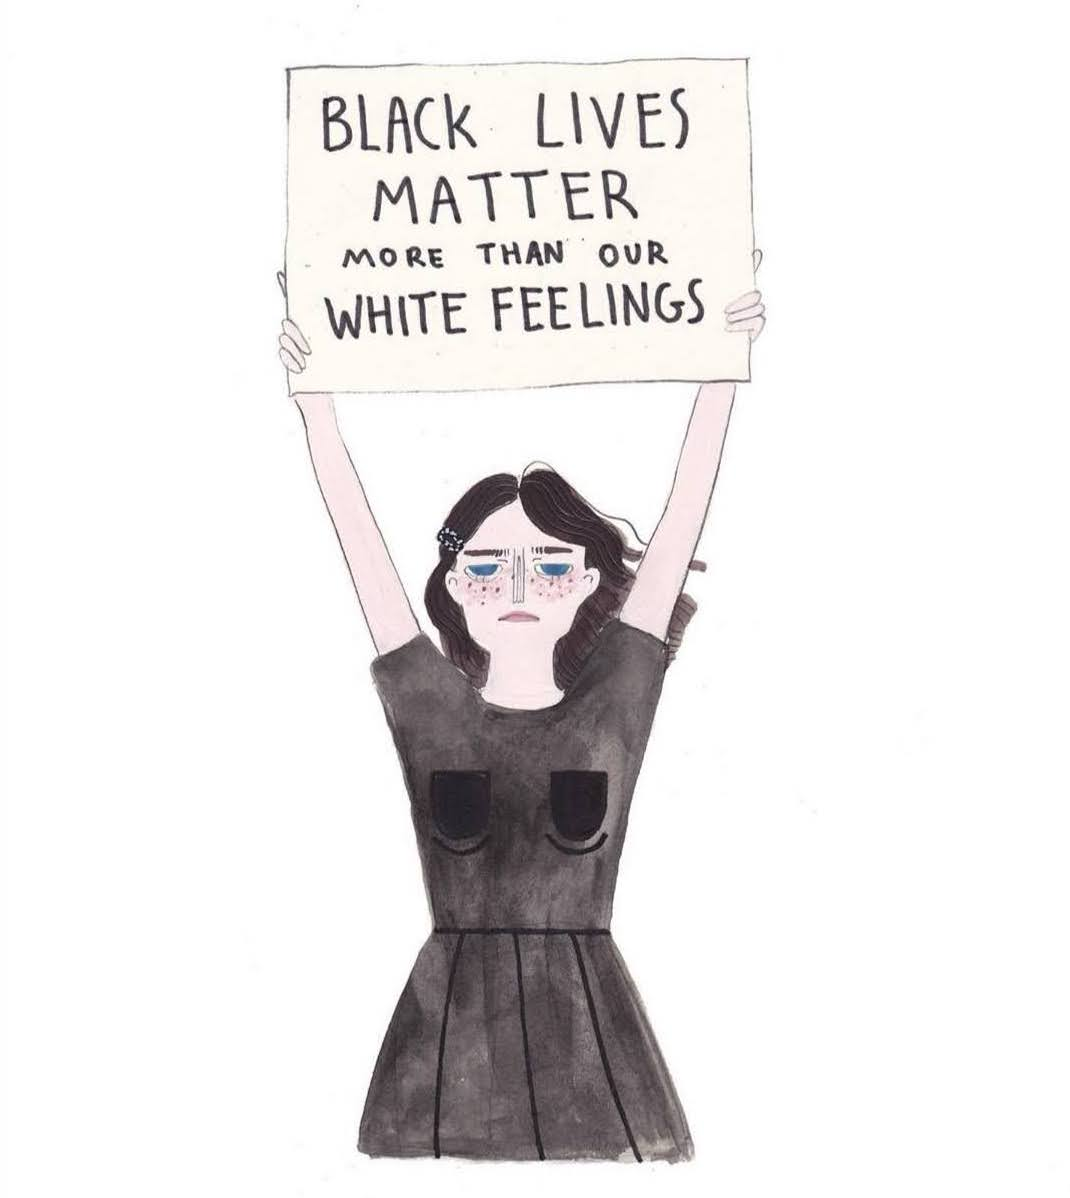 Black lives matter more than our white feelings